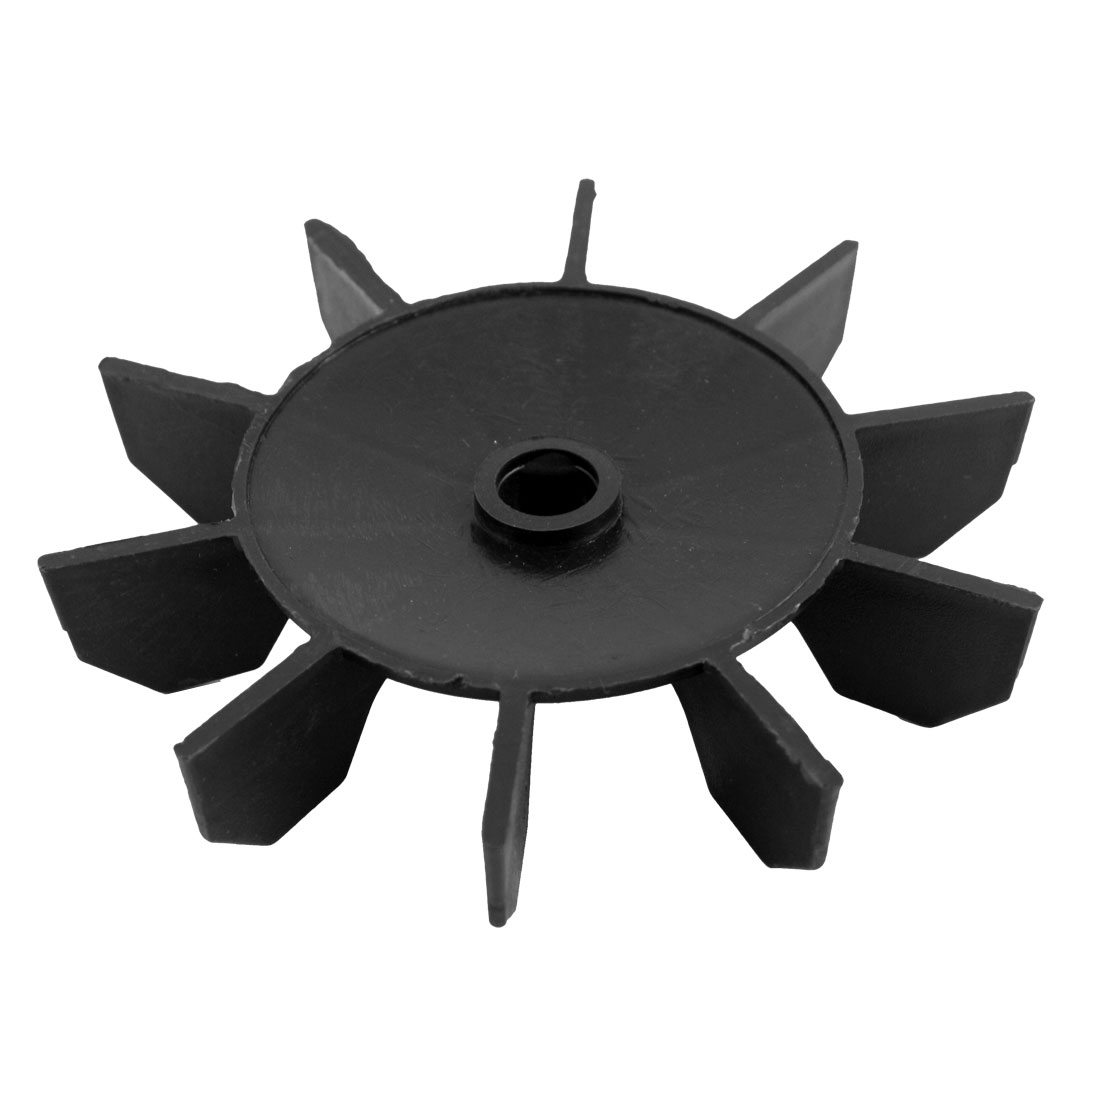 Machine Part Black Plastic 13mm Inner Diameter 10 Impeller Motor Fan Vane